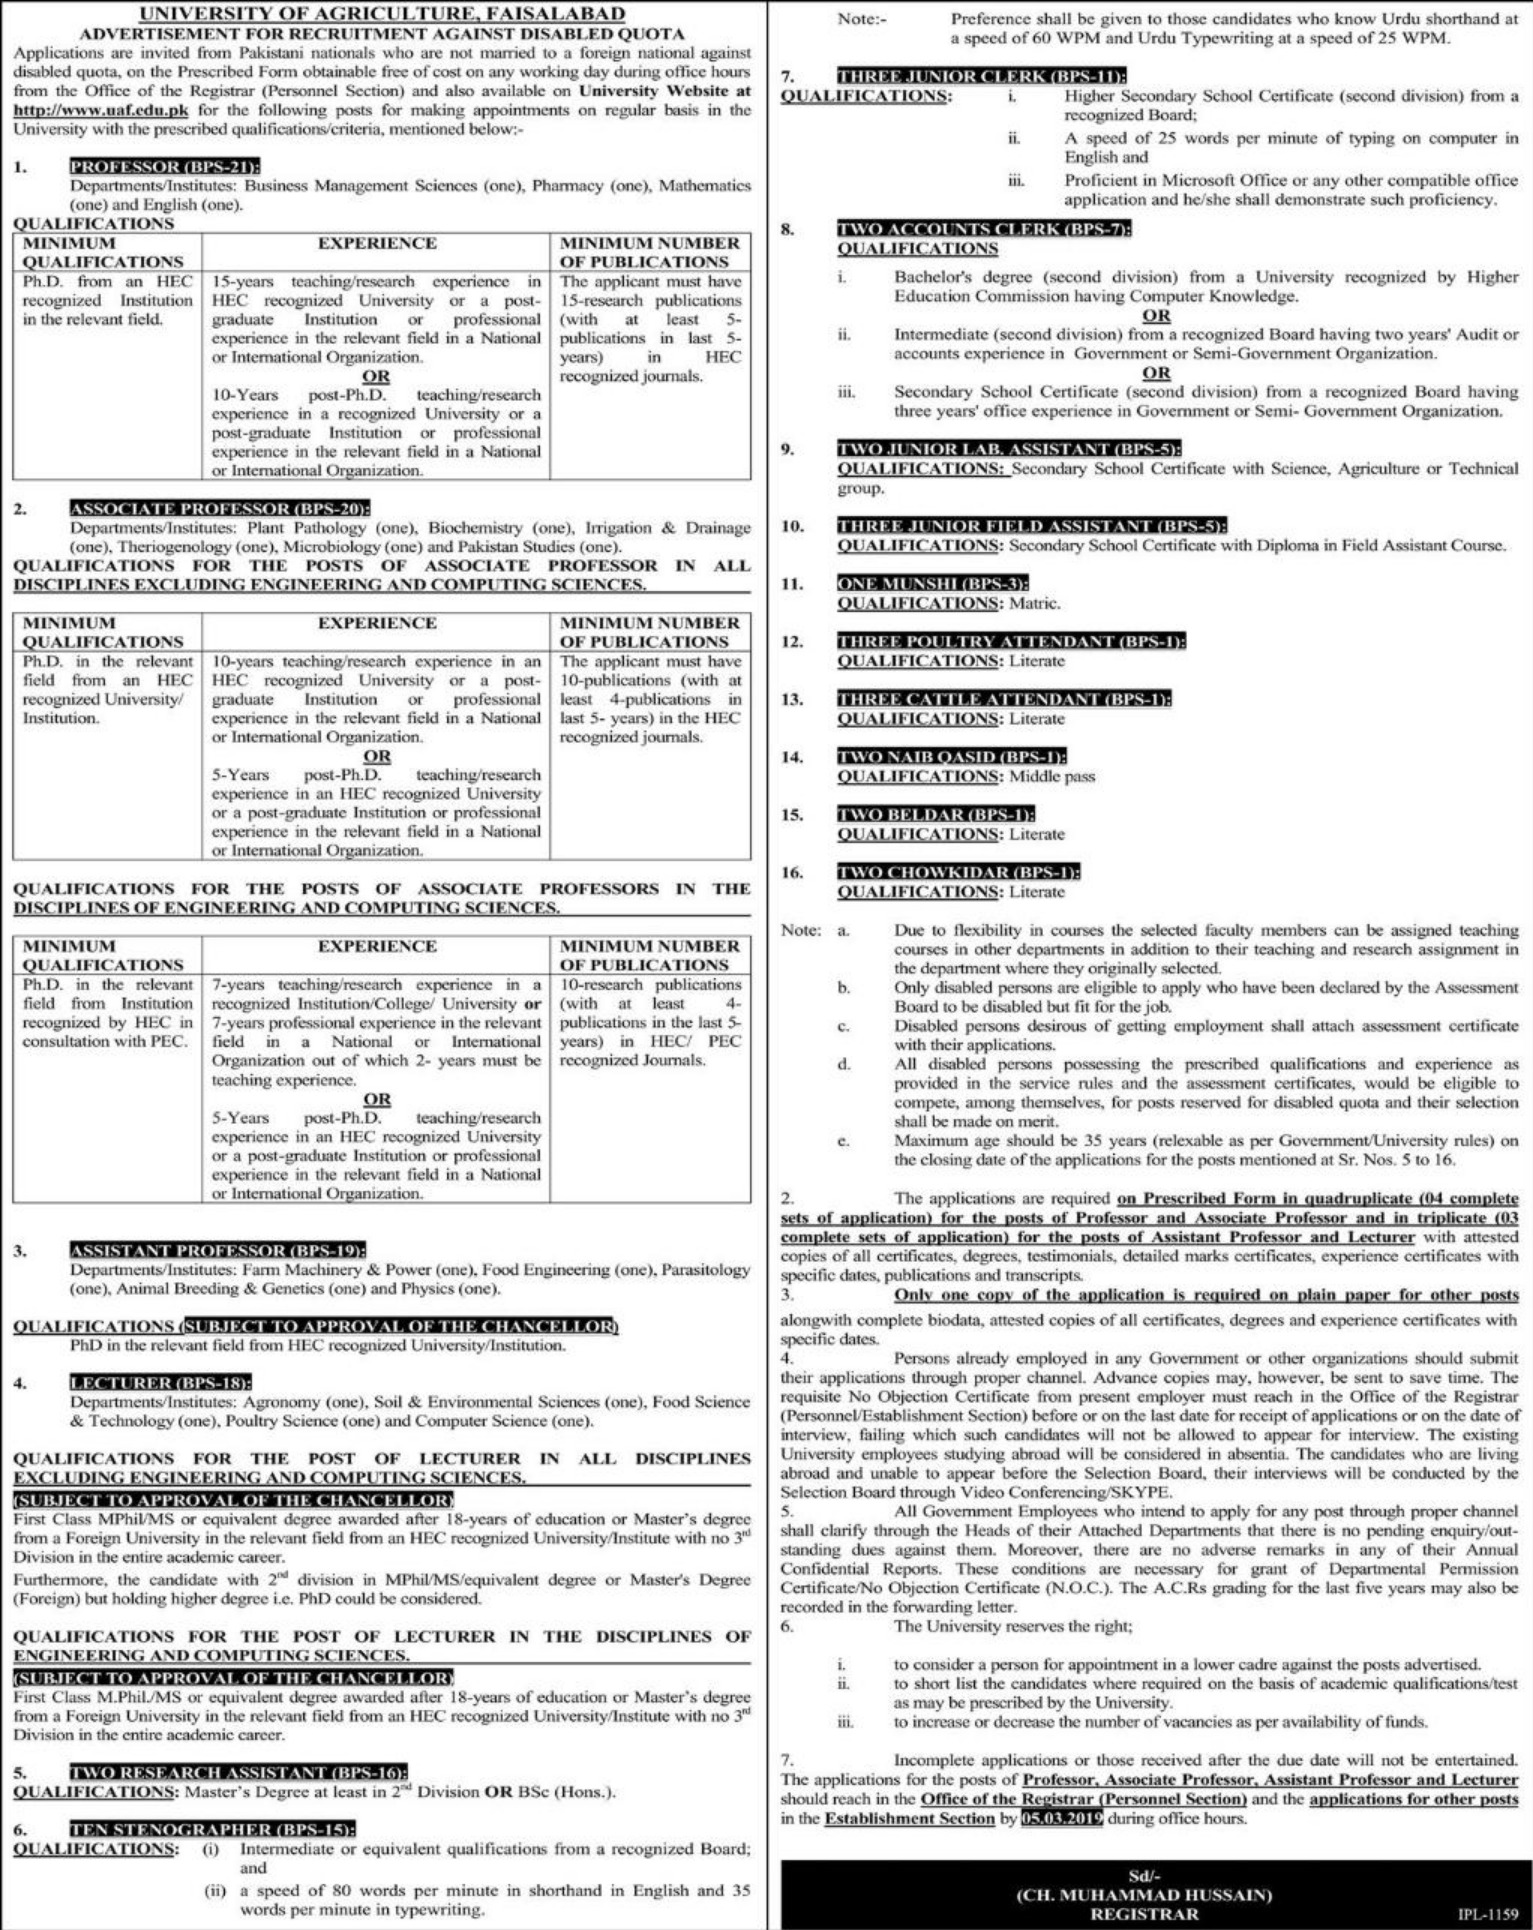 University of Agriculture Faisalabad Jobs 2019 Pakistan Latest